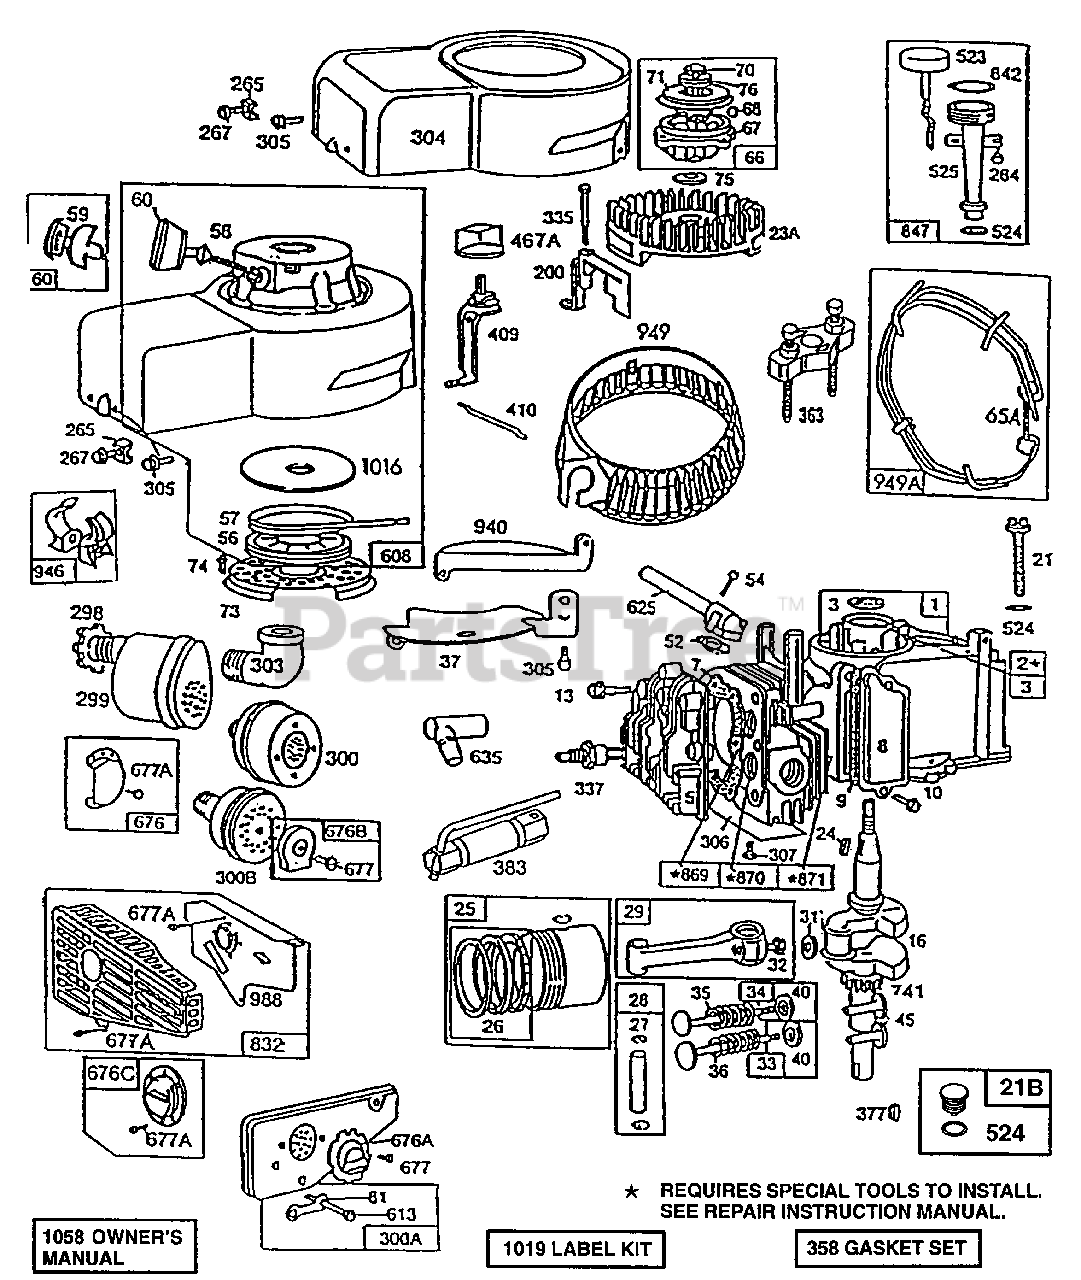 briggs & stratton 92982-5368-02 - briggs & stratton vertical engine  cylinder,mufflers,piston grp parts lookup with diagrams | partstree  partstree